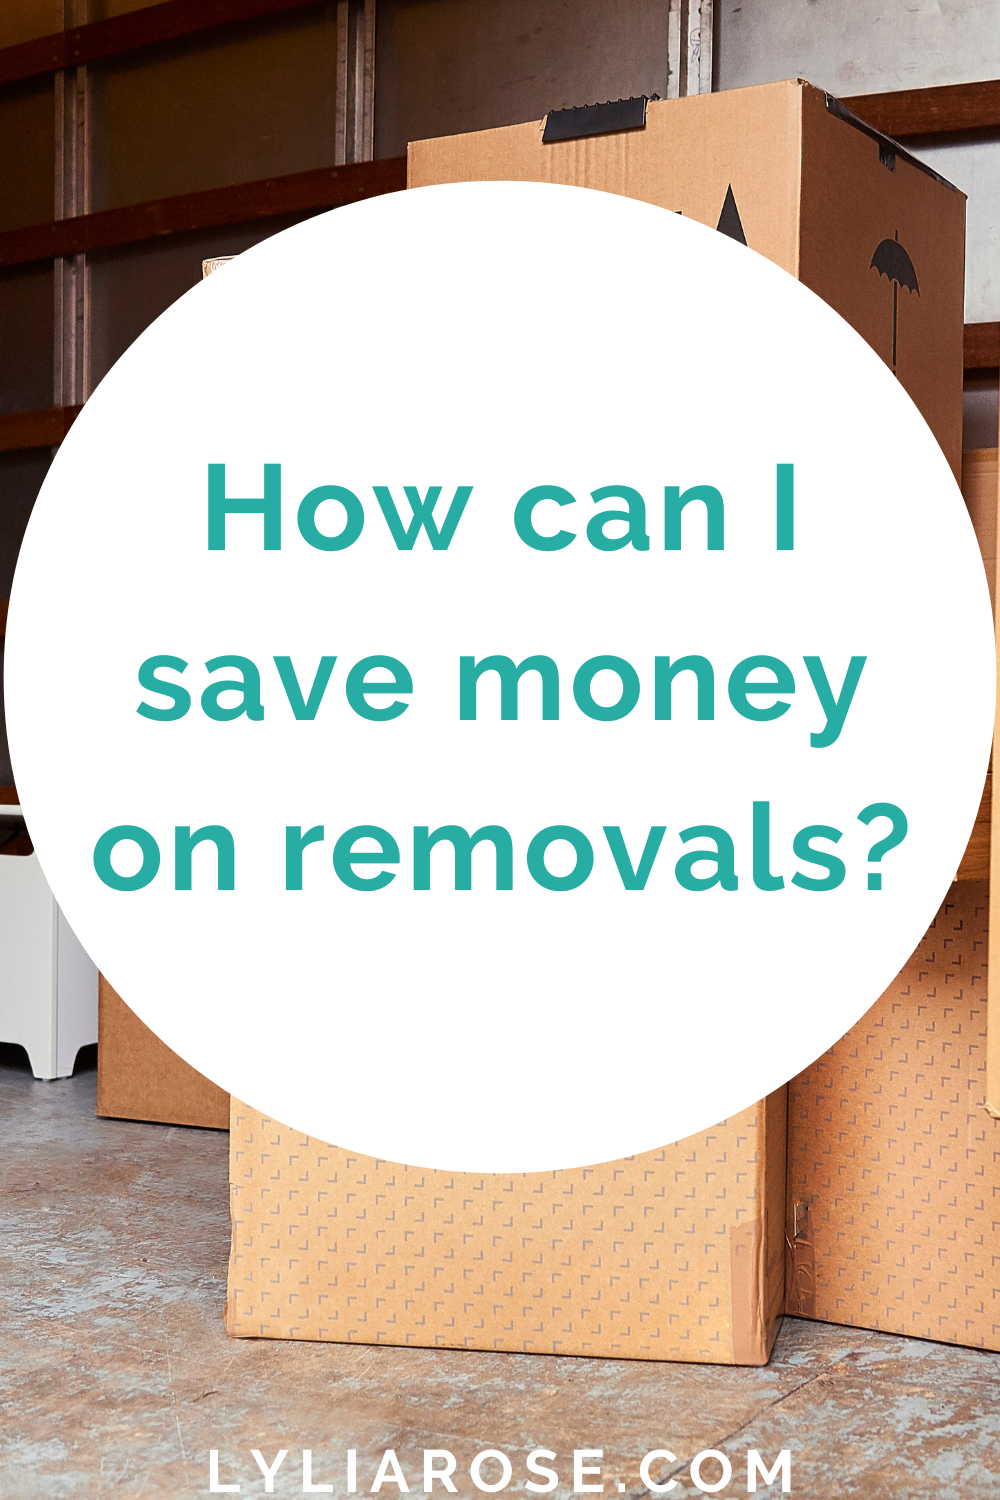 How can I save money on removals